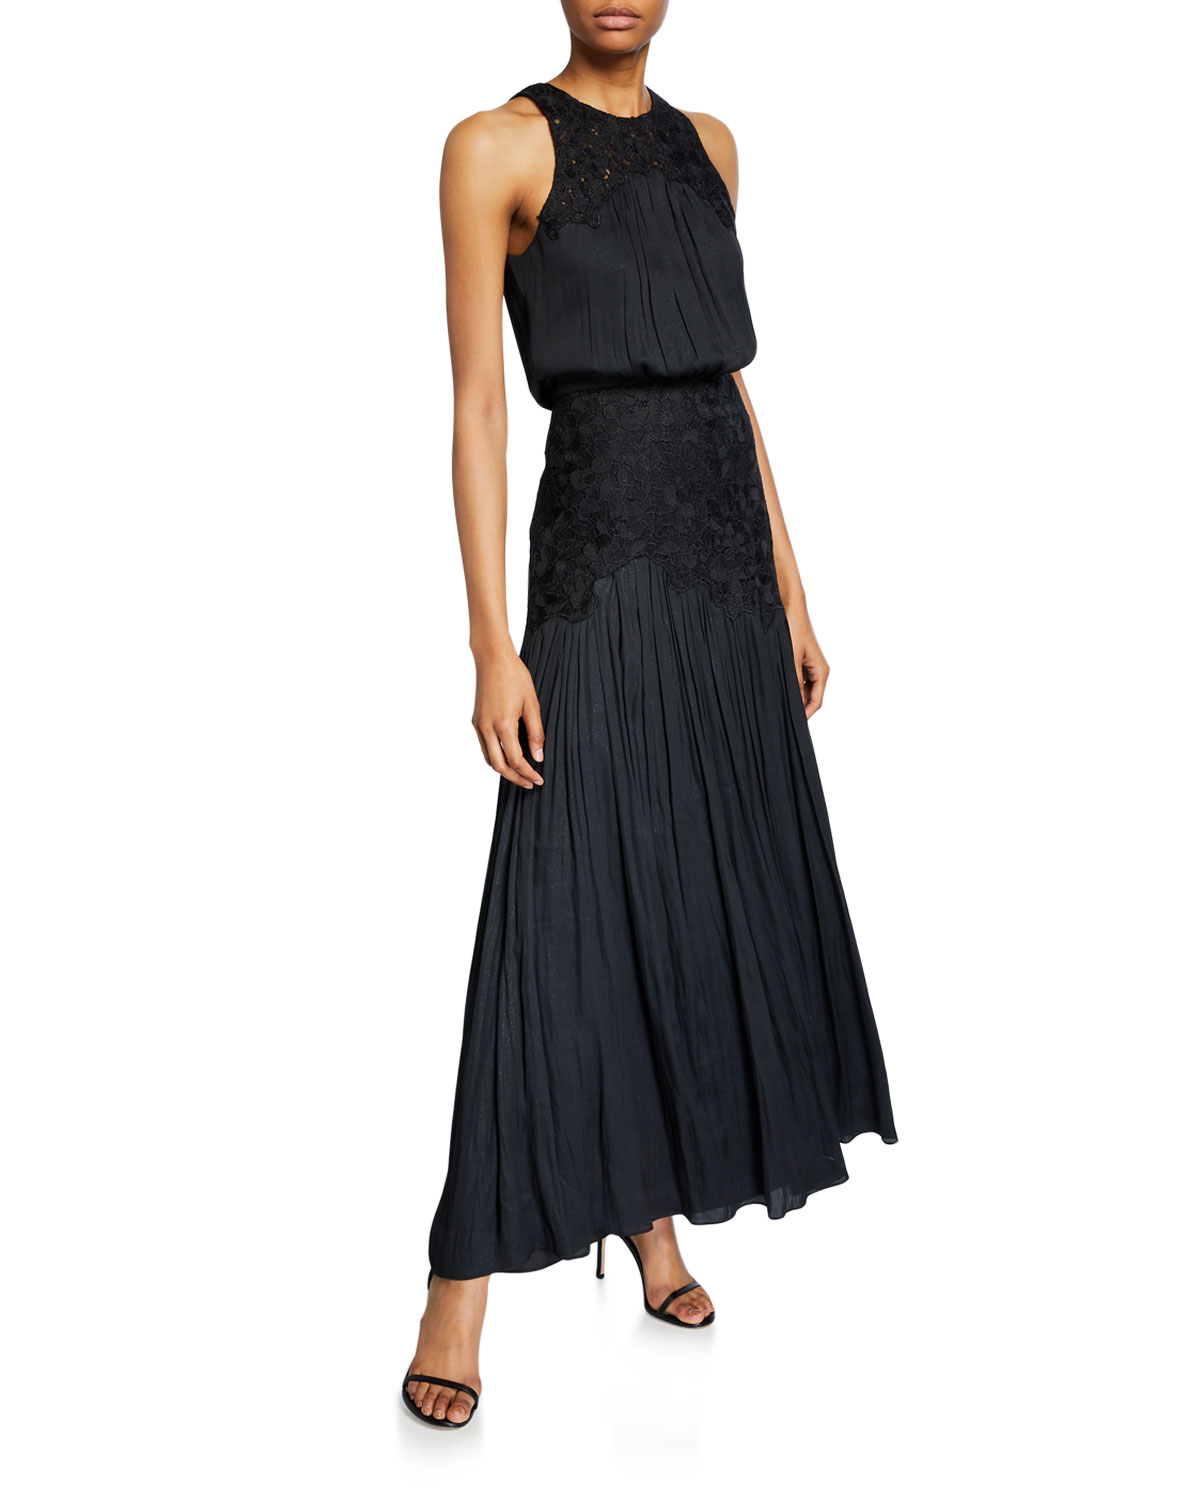 Halston Tops METALLIC MEMORY GEORGETTE FLORAL APPLIQUE SLEEVELESS GOWN